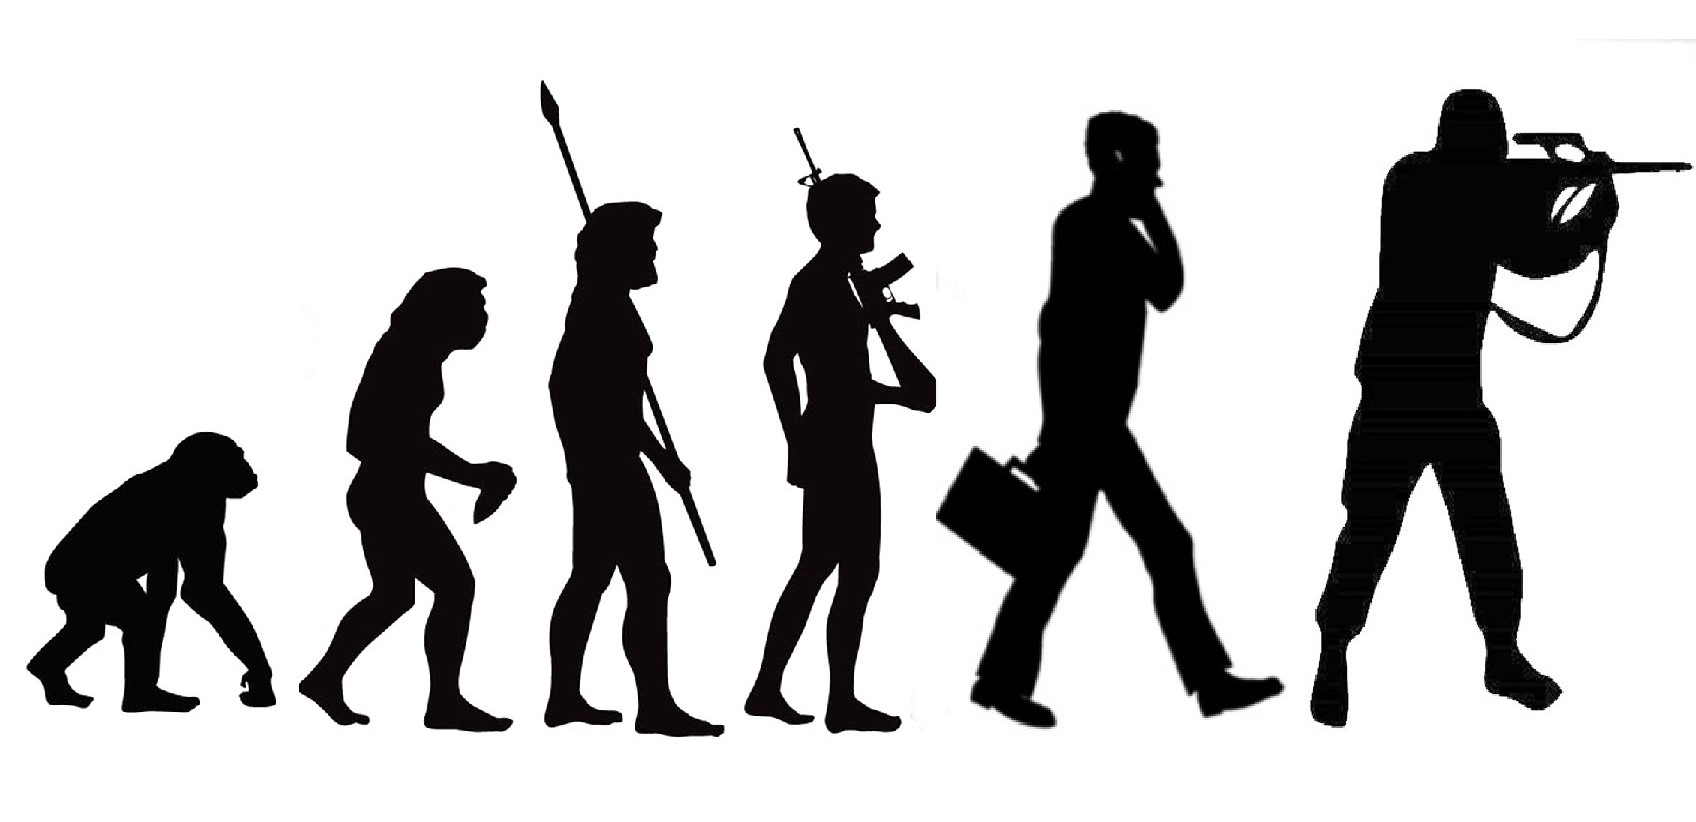 Violence Or Peace On Earth From Early Primitive Man To The Advanced Man Of Technology